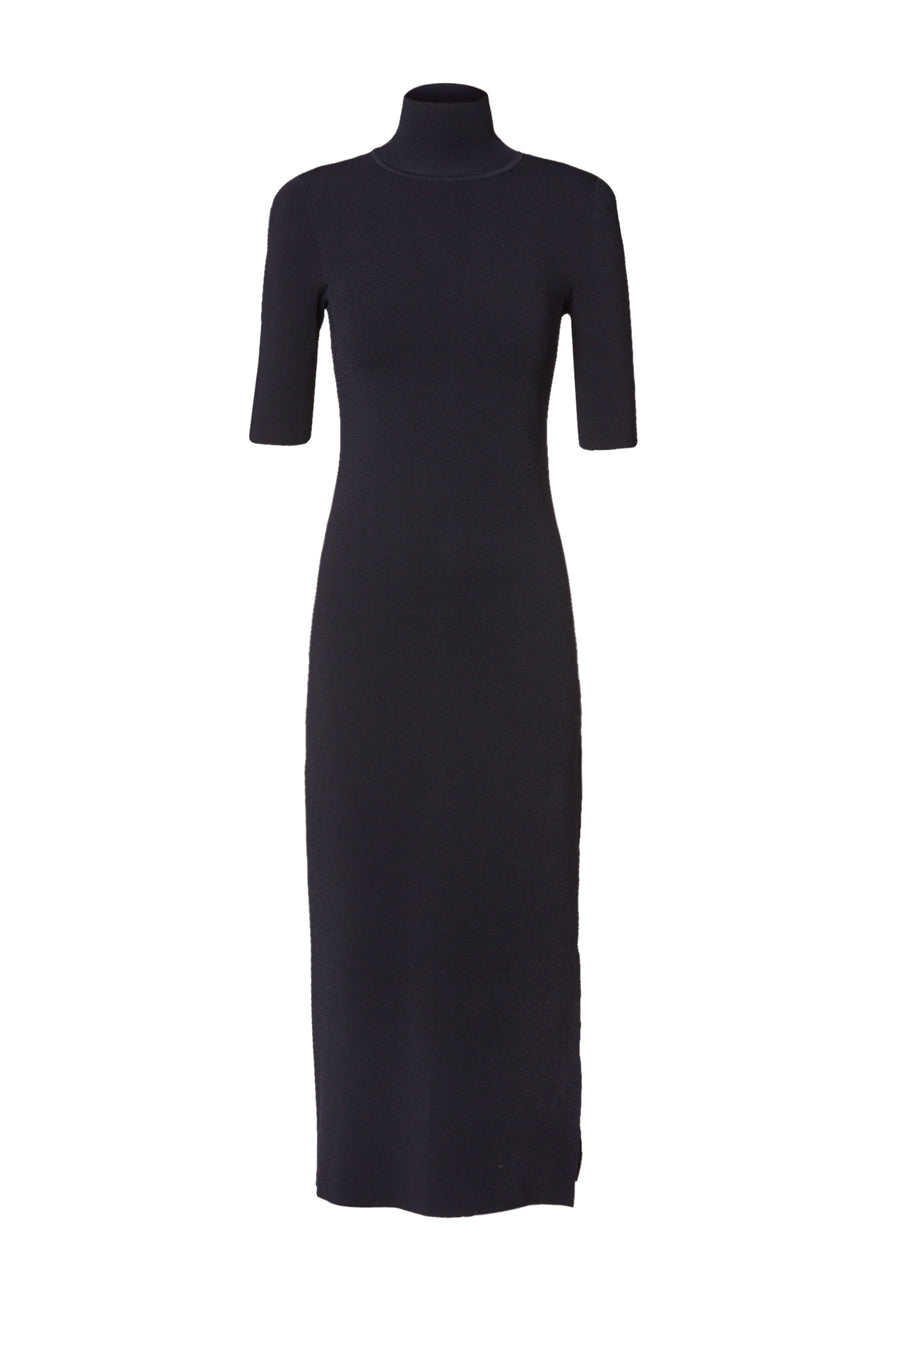 Micro Crepe Short Sleeve Dress, high neckline, short sleeves, thigh high slit on the side of the dress, Color Navy